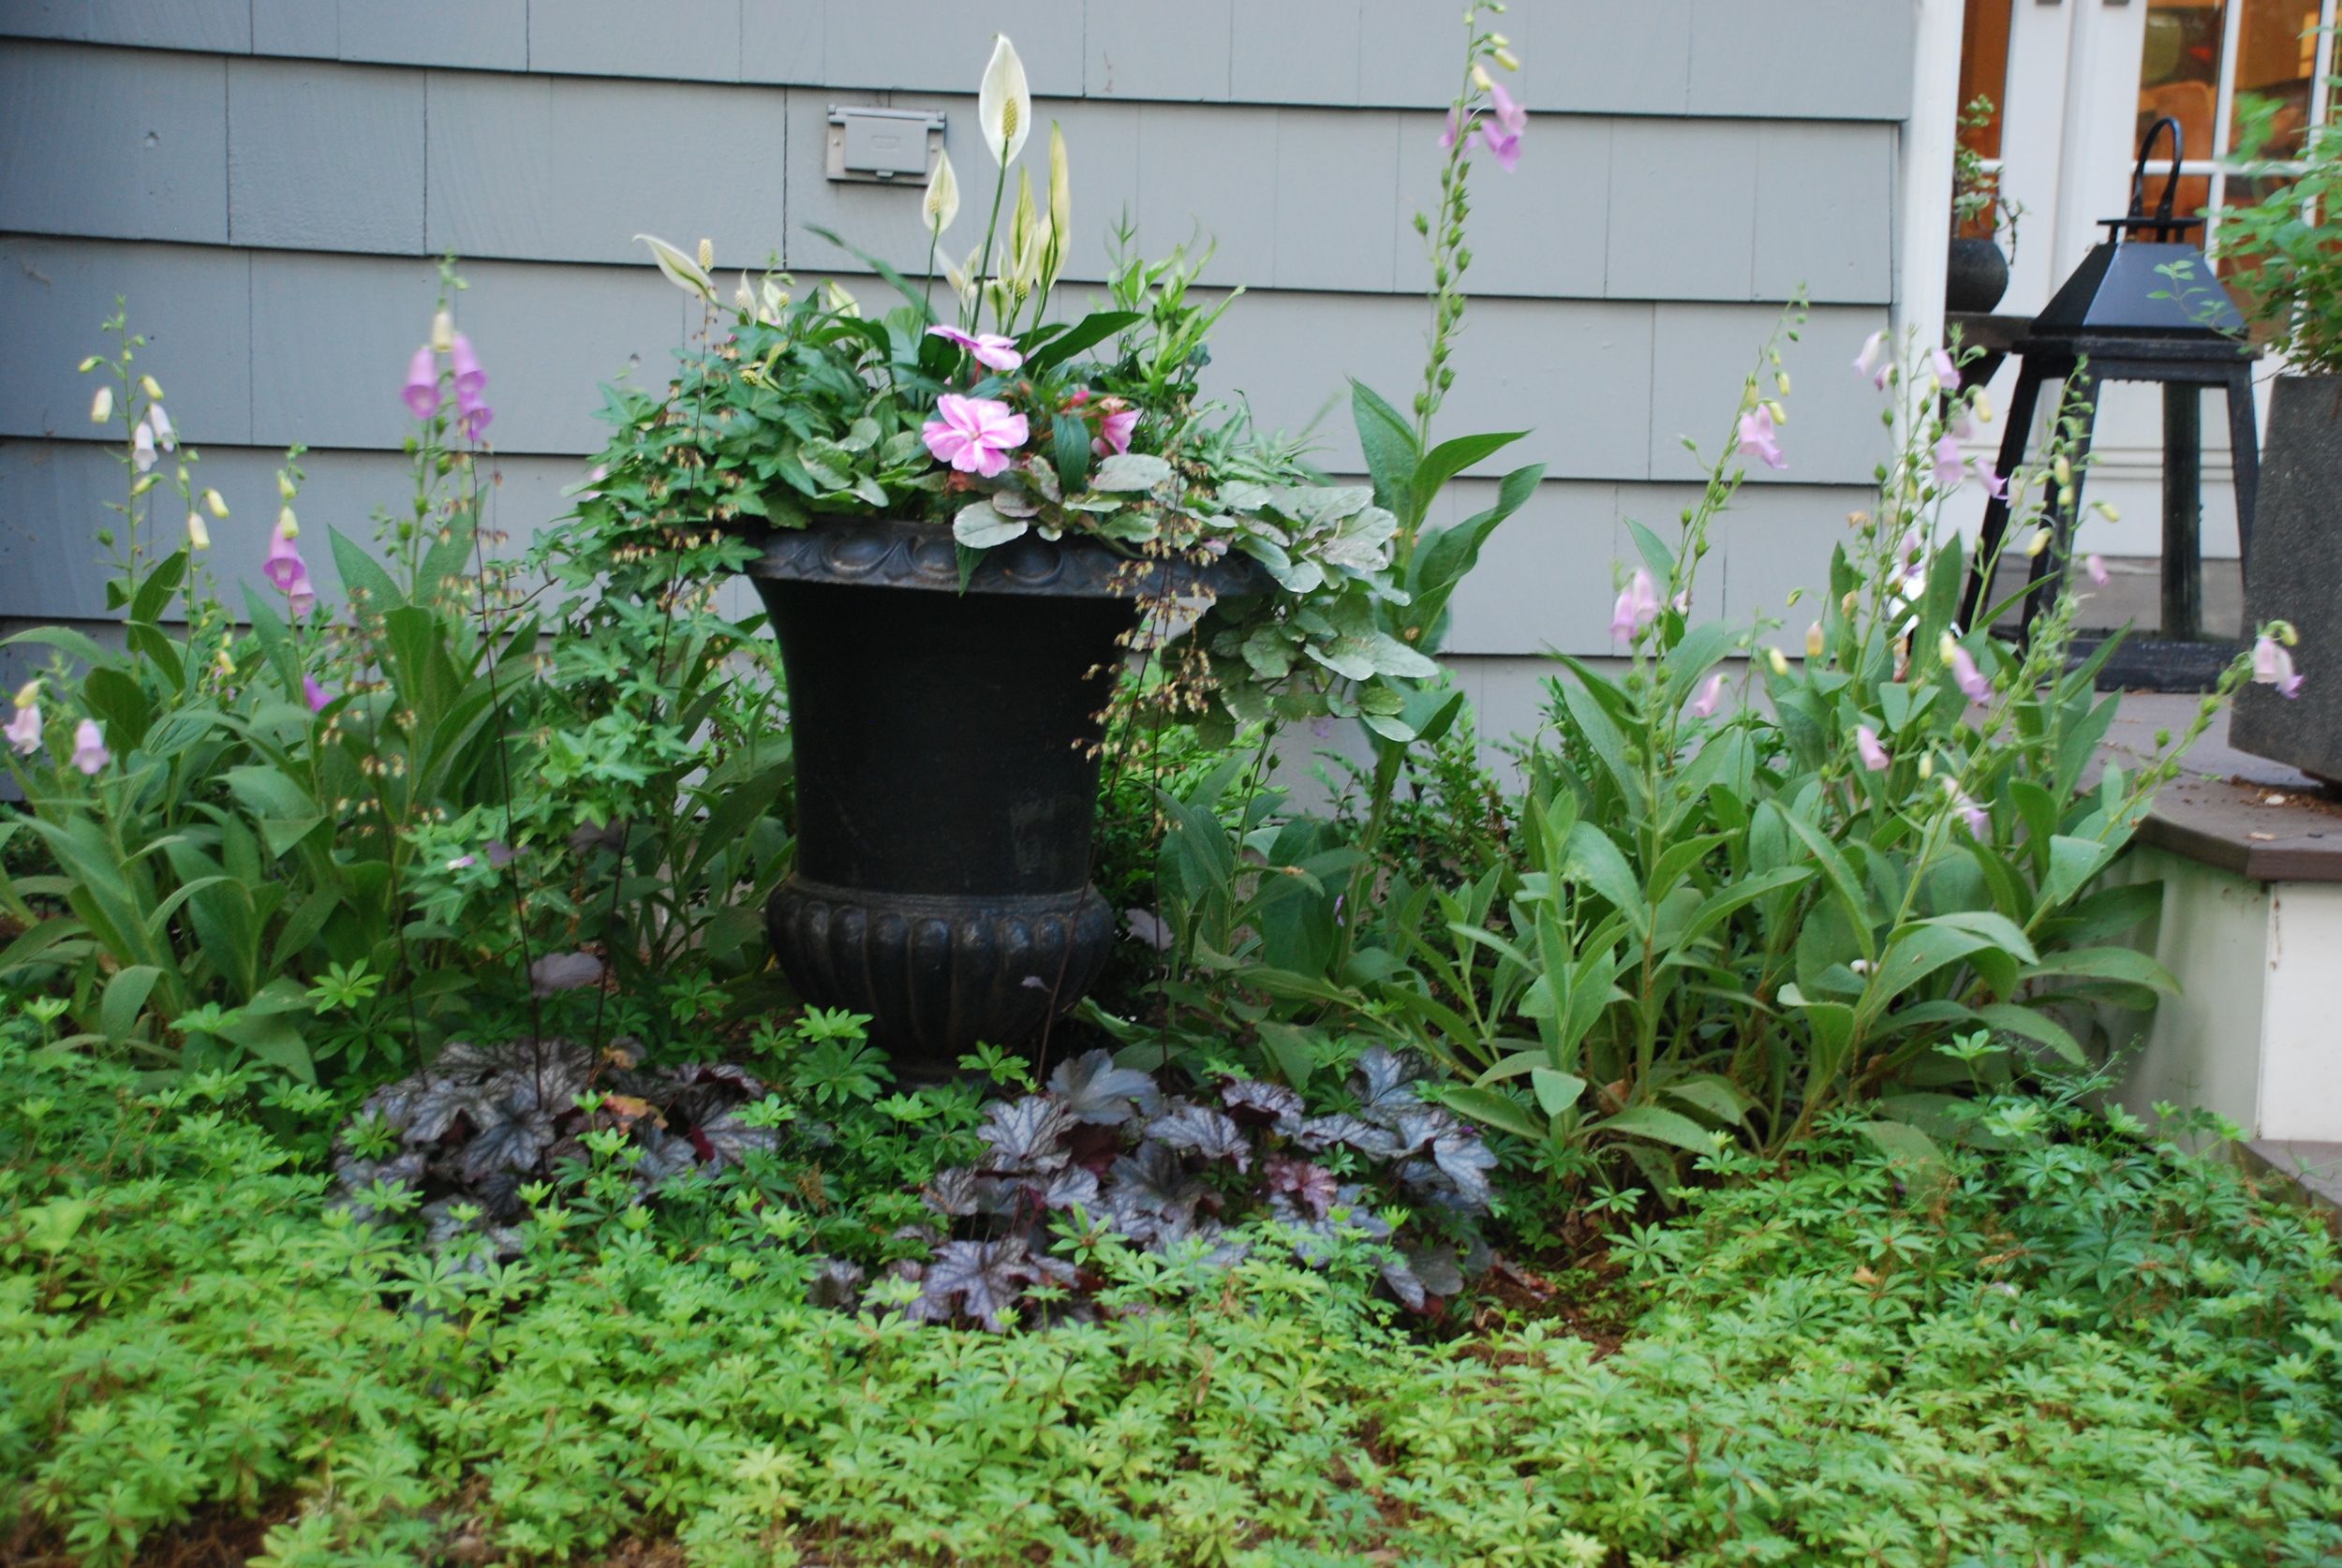 Sunny small garden with digitalis and a decorative urn